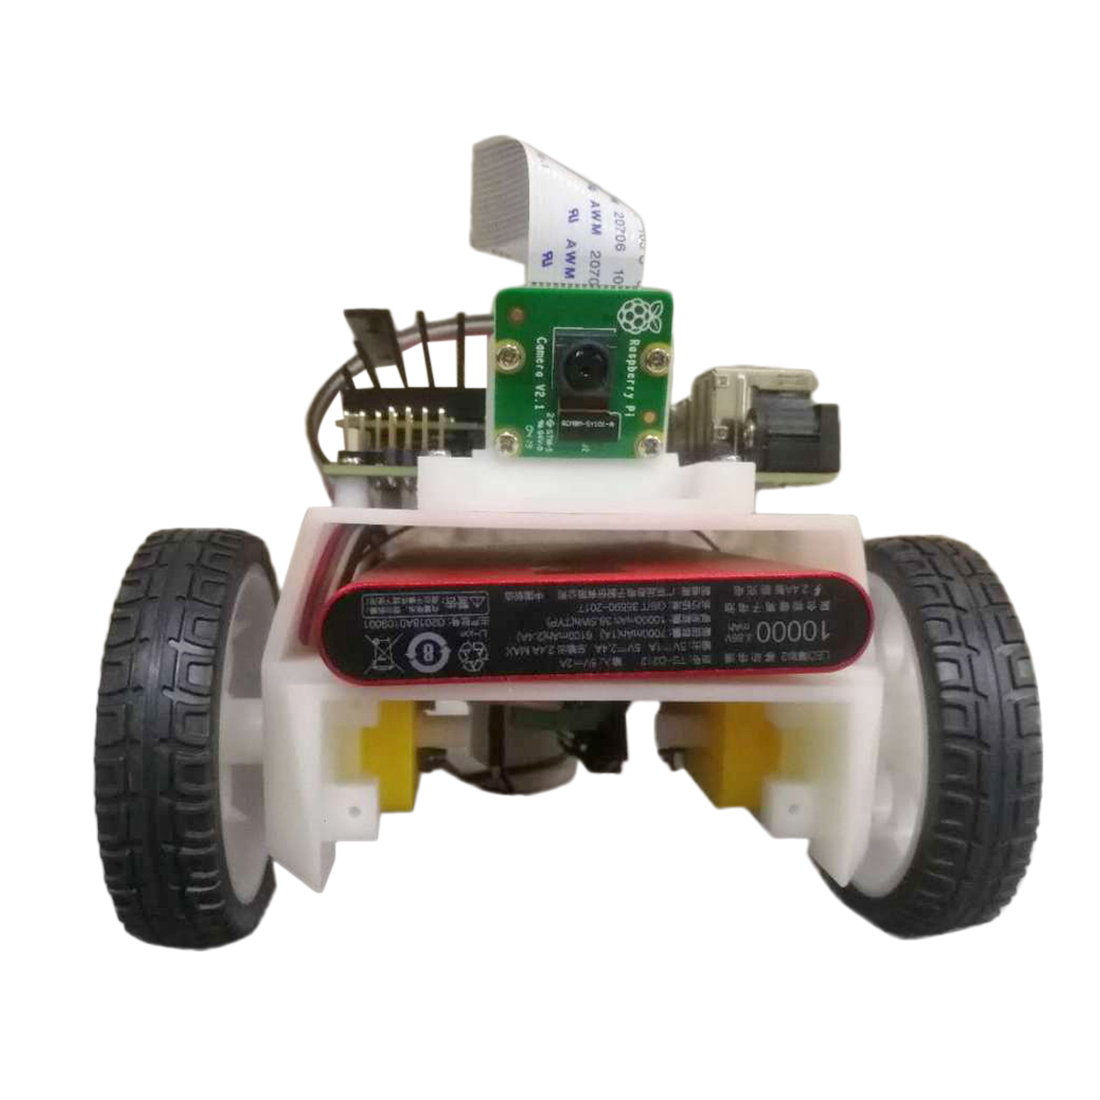 Programmable Automatic Drive Robot Car Kit Educational Learning Kit Programmable Toys For Kids Adults Gift  High Quality